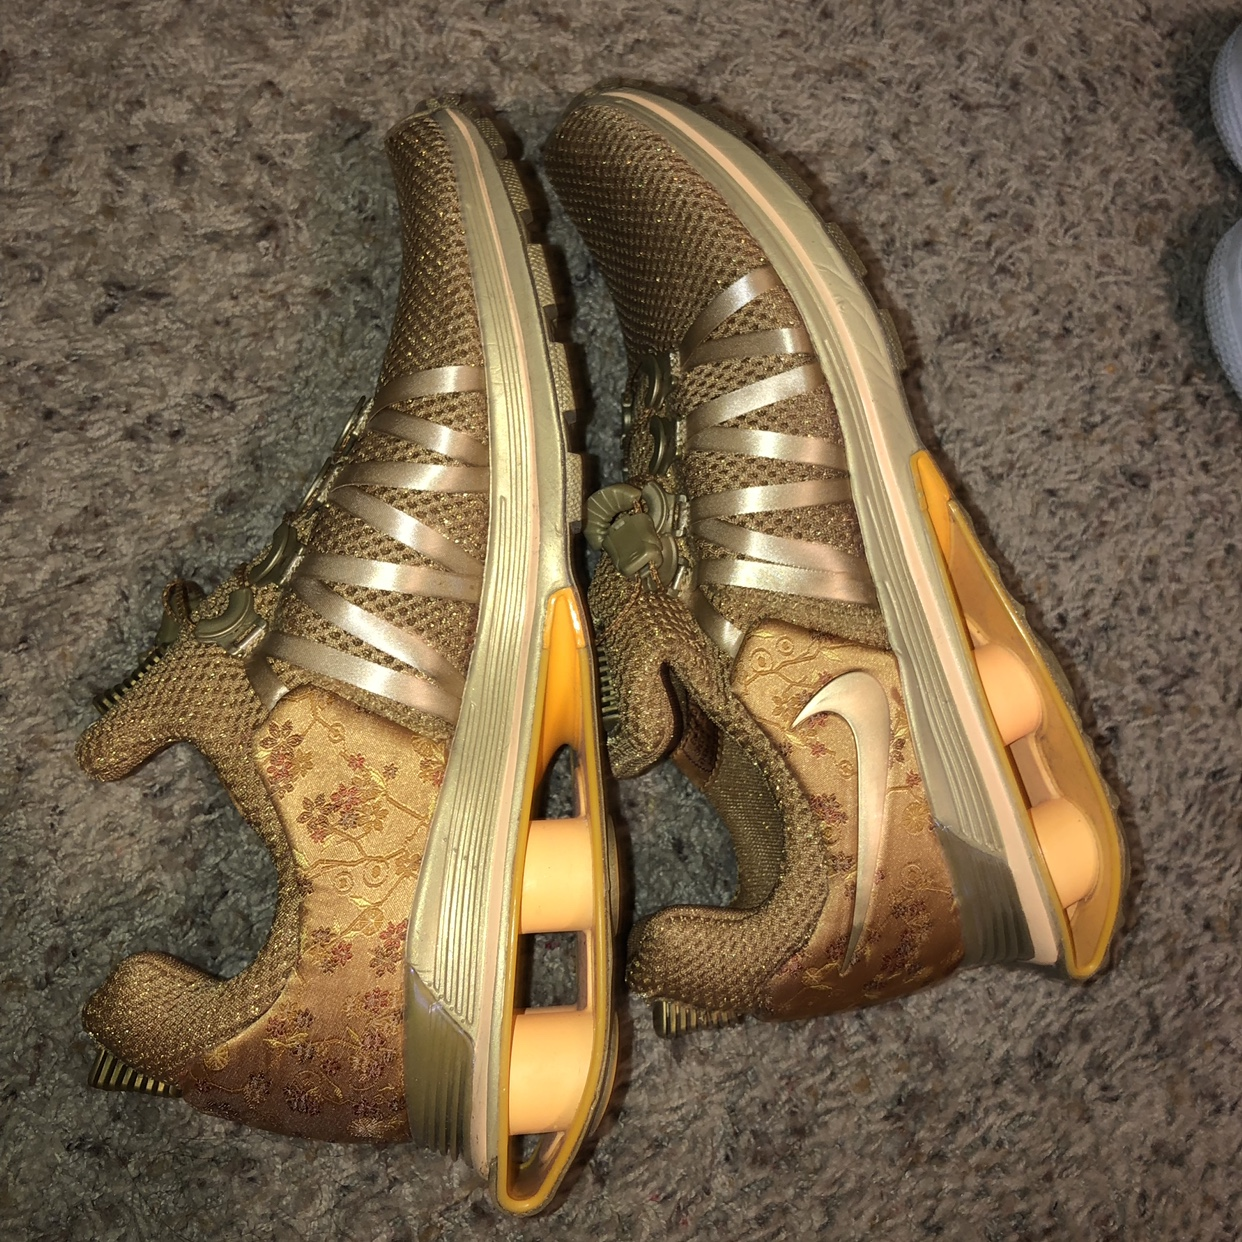 GOLDEN HOUR NIKE SHOES. So cute in the